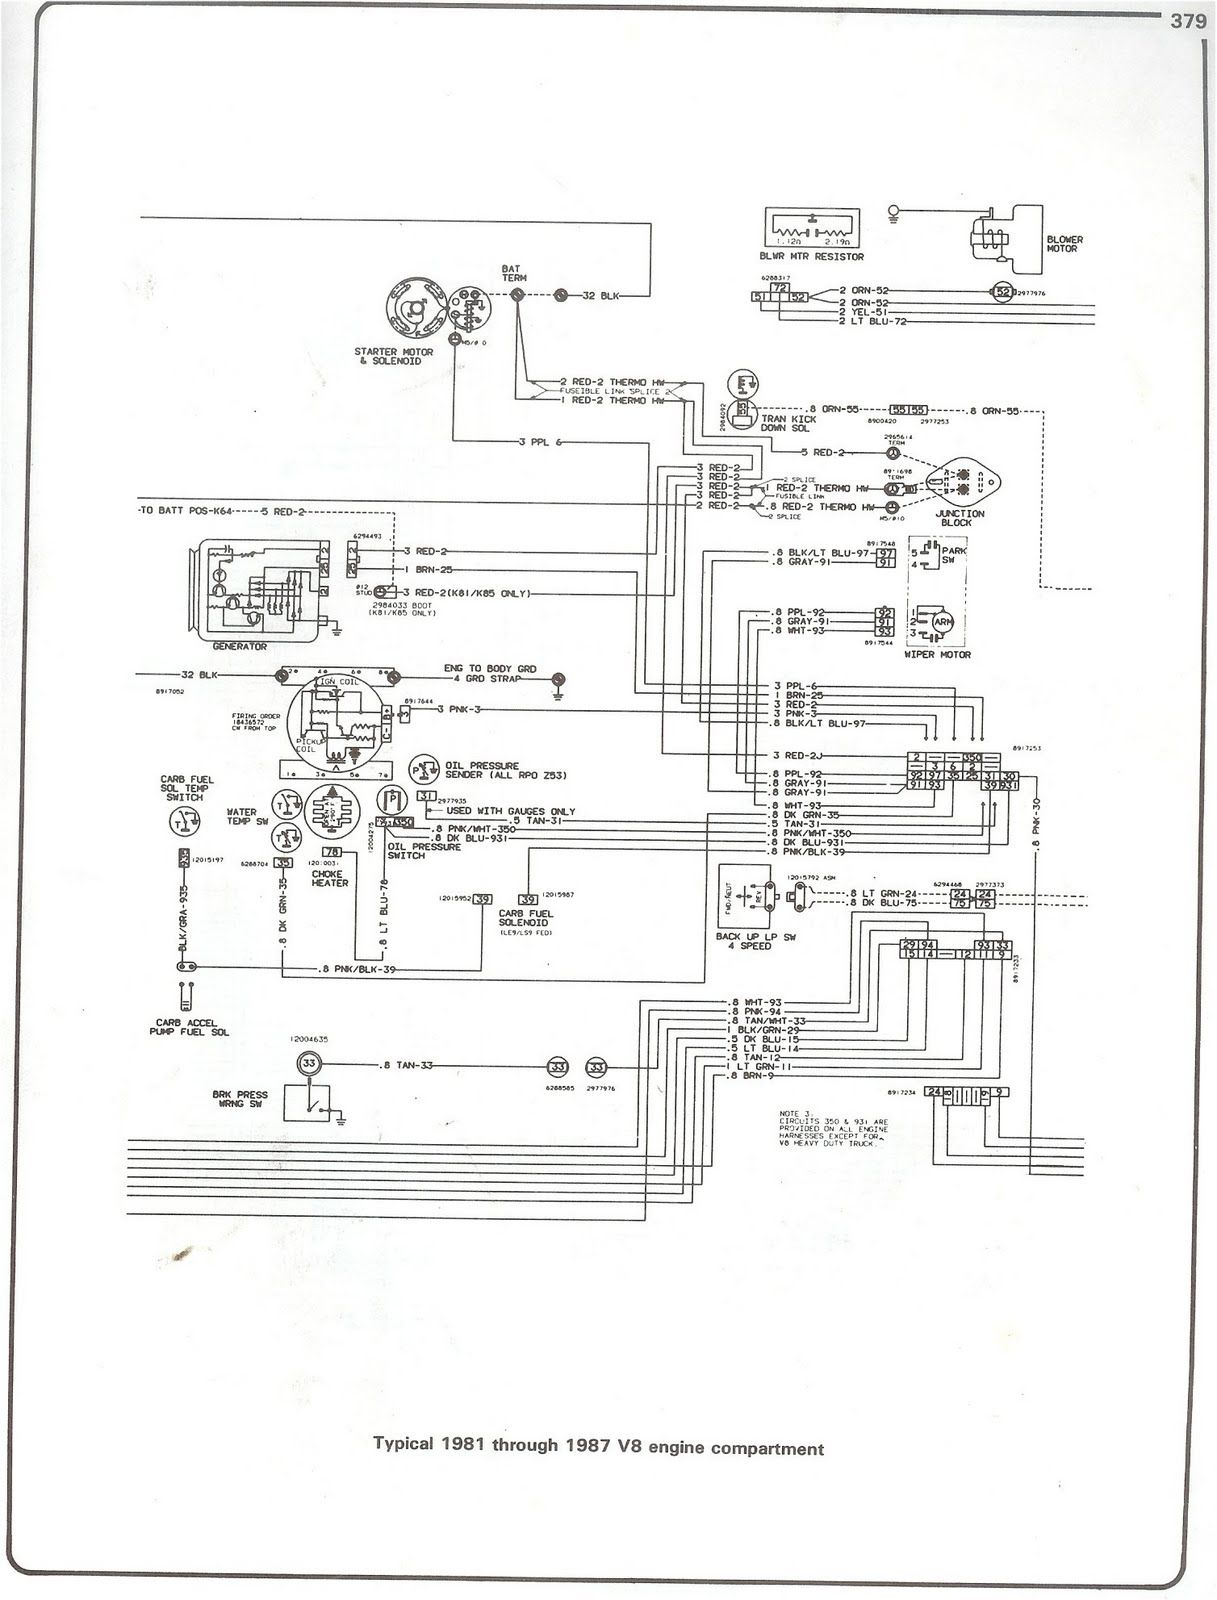 This is engine compartment wiring diagram for 1981 trough 1987 Chevrolet V8  Truck. Description from autowiringdiagra… | Chevy trucks, 1979 chevy truck, Truck  engine | 1981 Chevy Silverado Wiring Harness |  | Pinterest